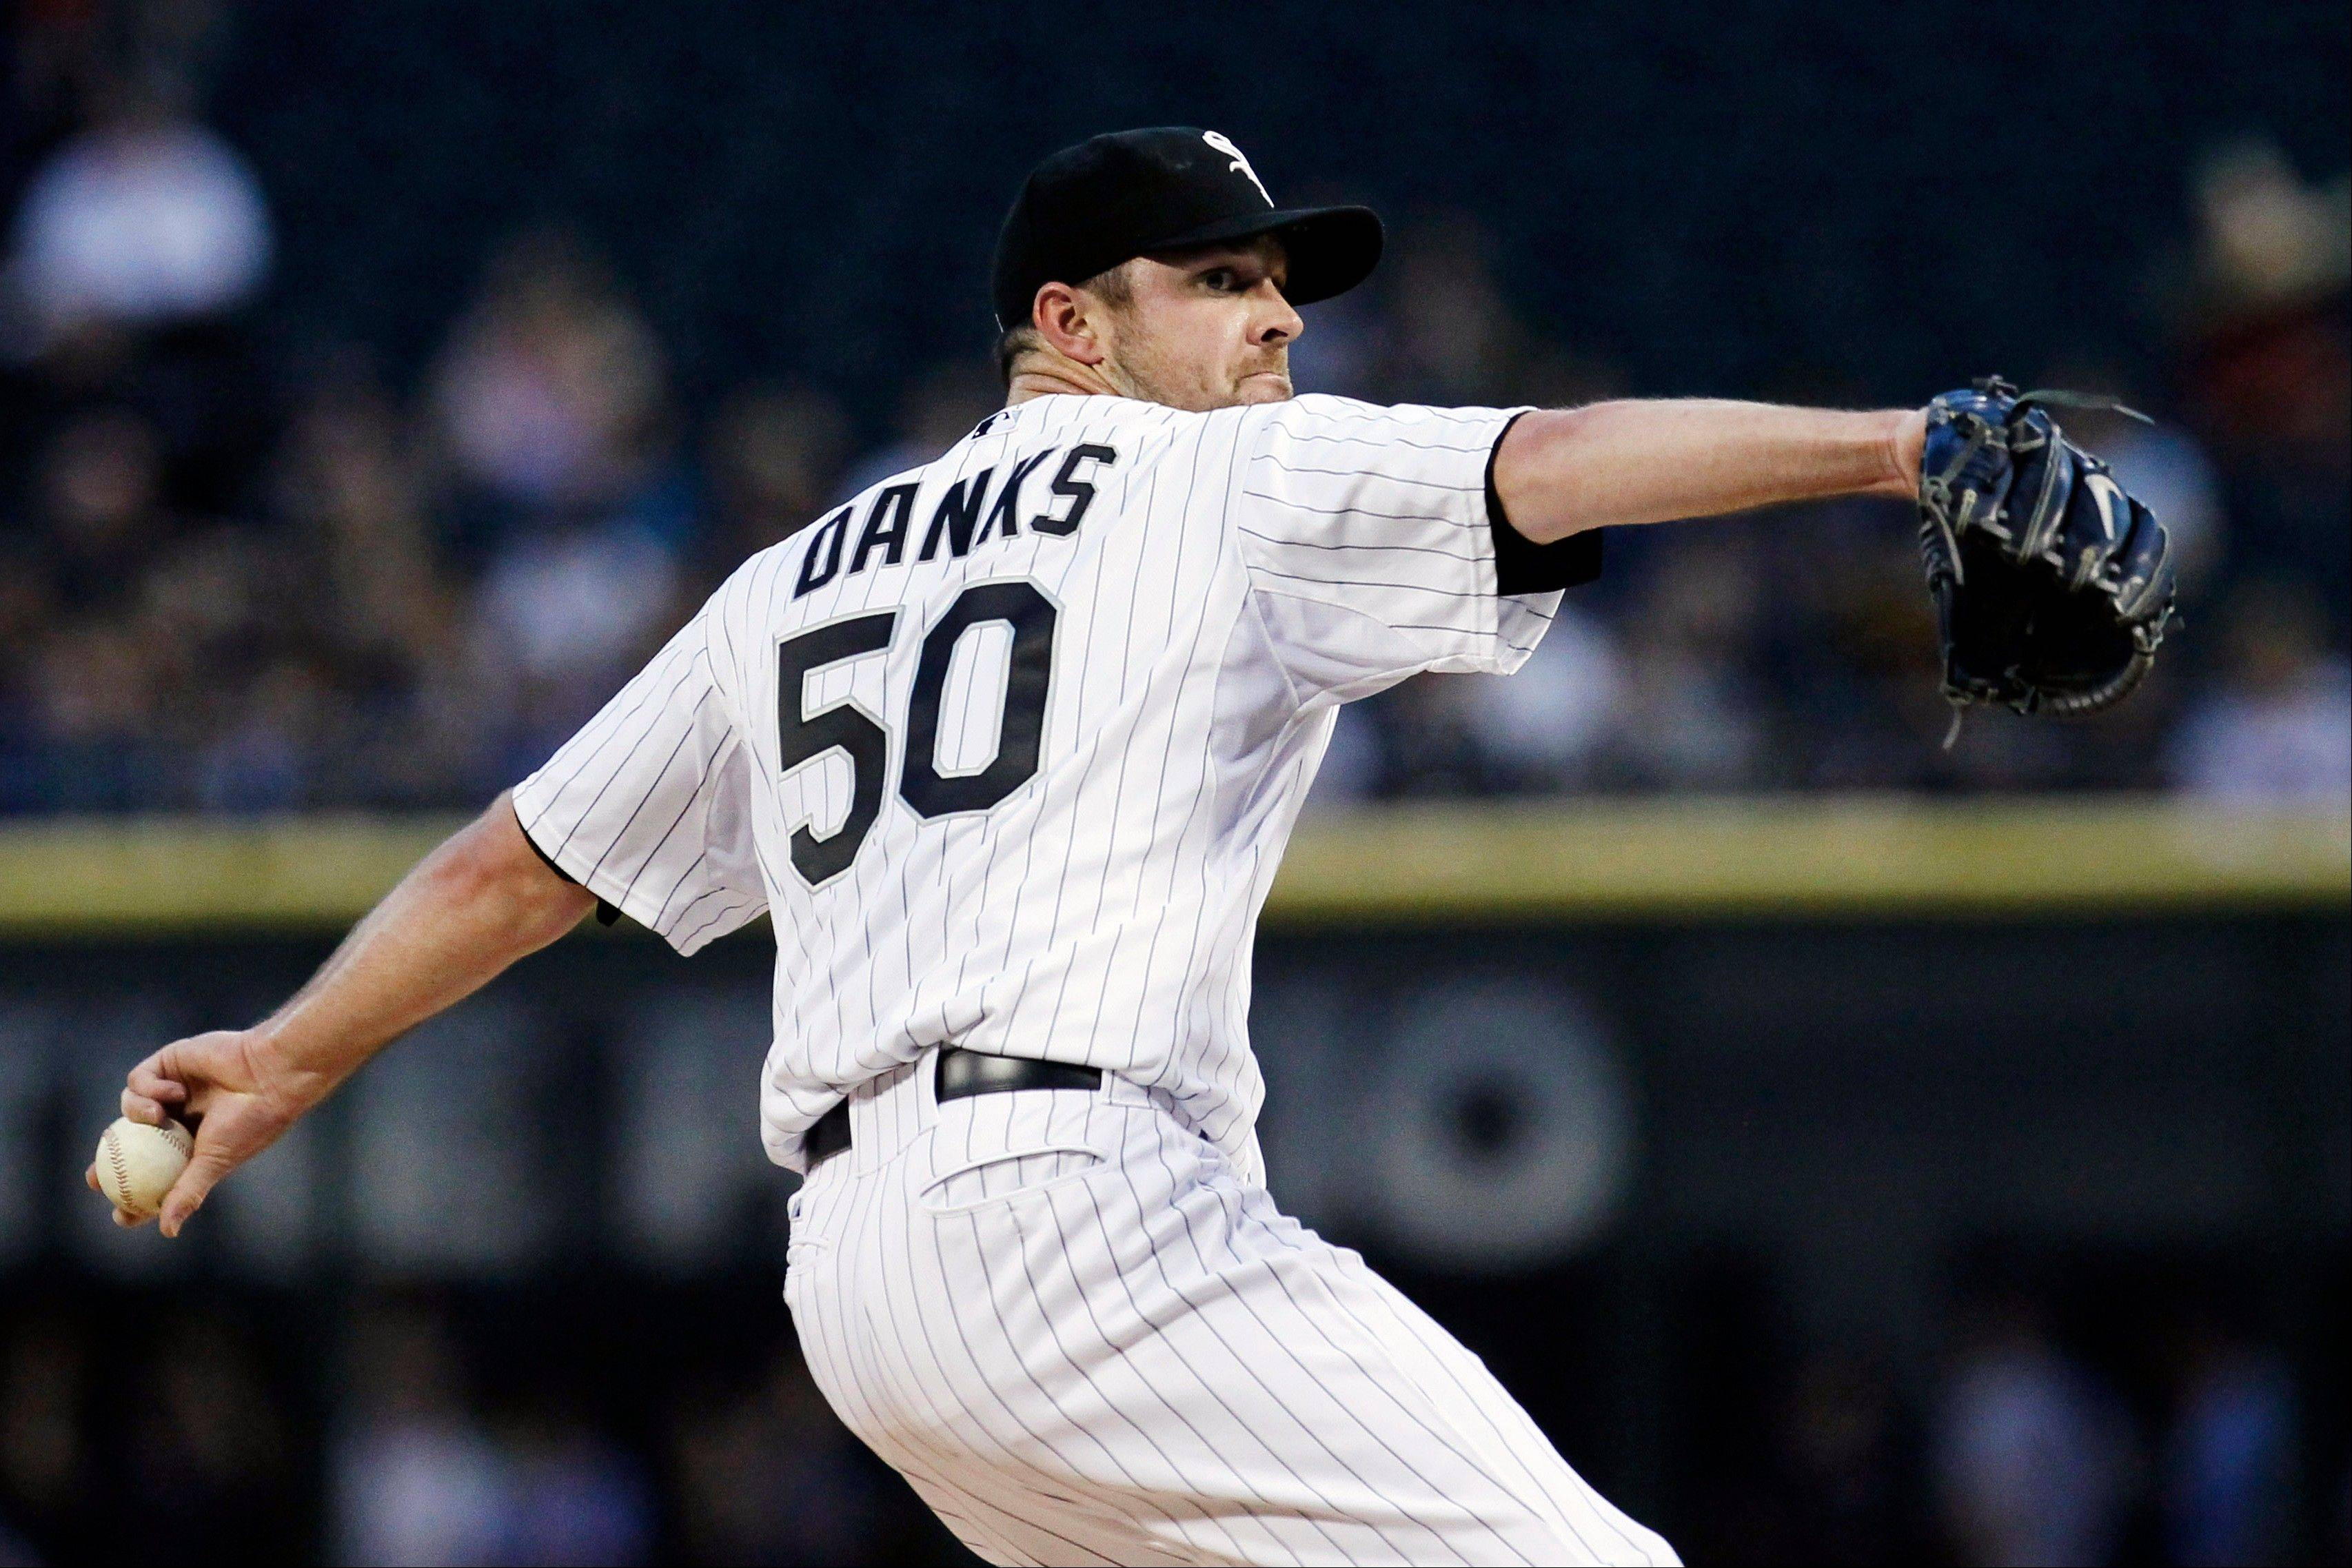 White Sox starting pitcher John Danks is not expected to make his first Cactus League start until March 4.